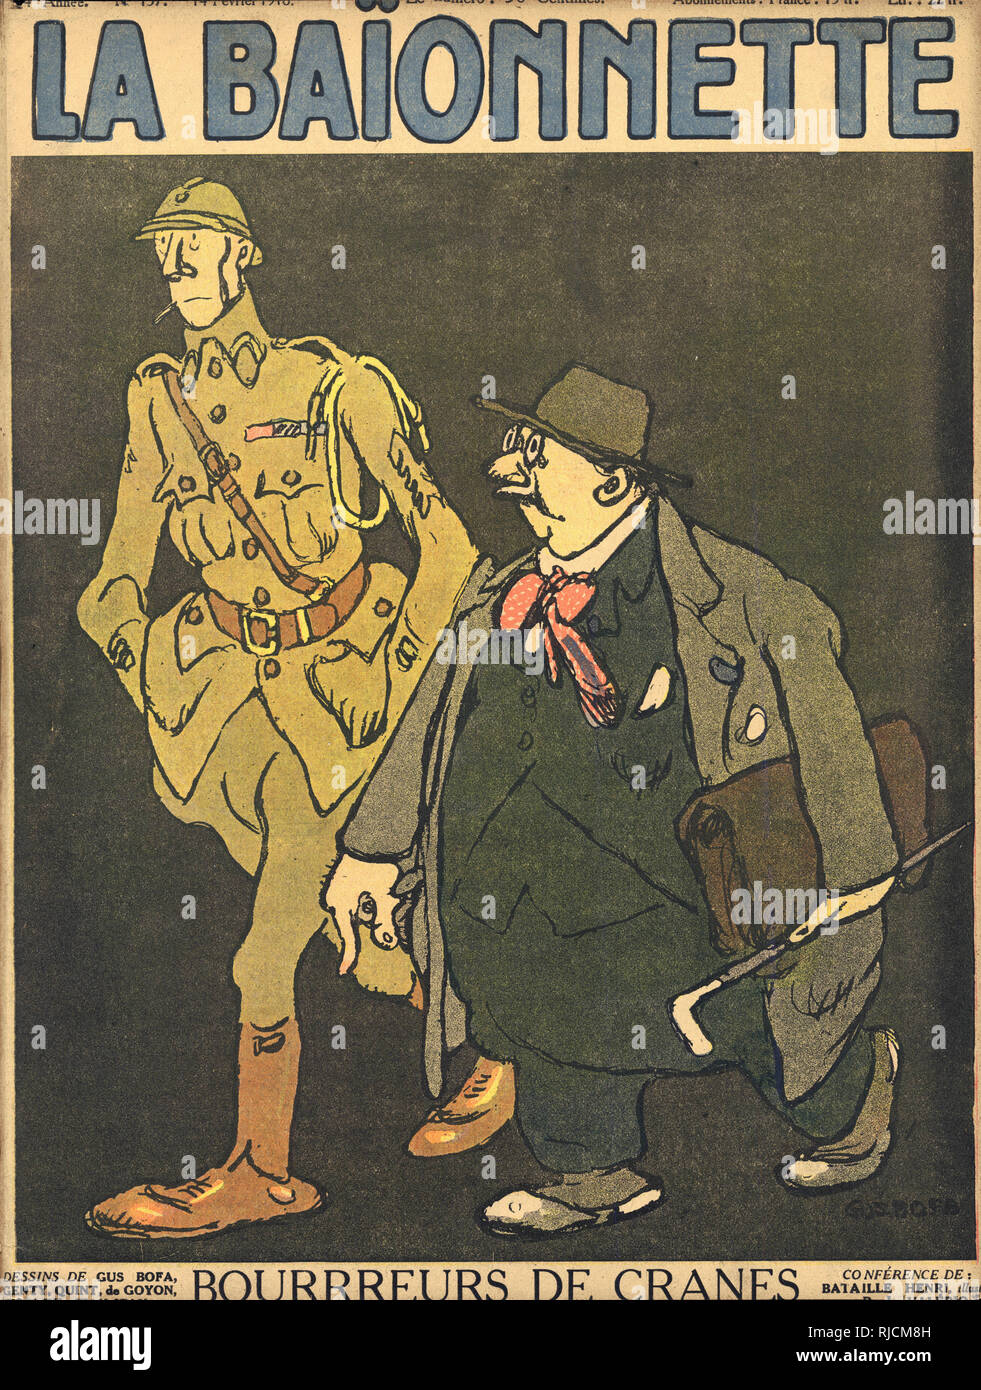 Front cover design for La Baionnette, Head Crushers. Showing a tall soldier in khaki uniform and a plump bureaucrat. Stock Photo